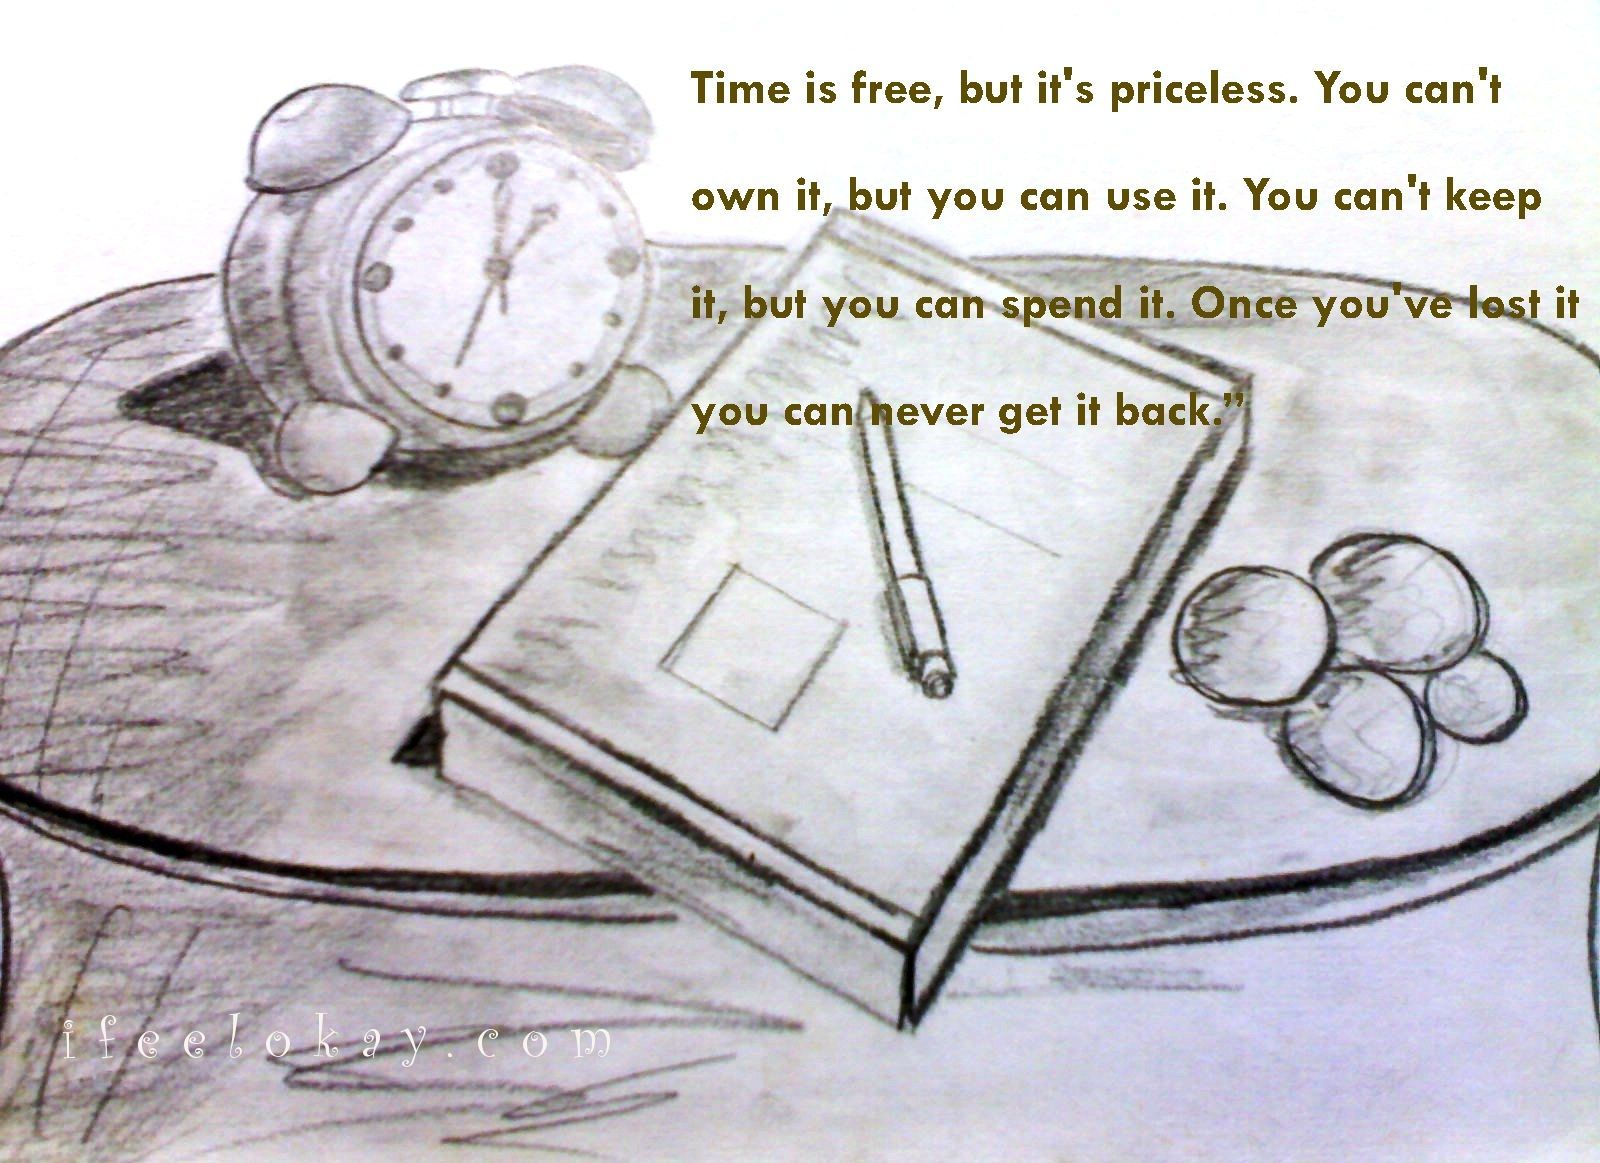 time is free,but it's priceless.u cant own it,but u can use it. u cant keep it,but u can spend it. once u've lost it u can never get it back